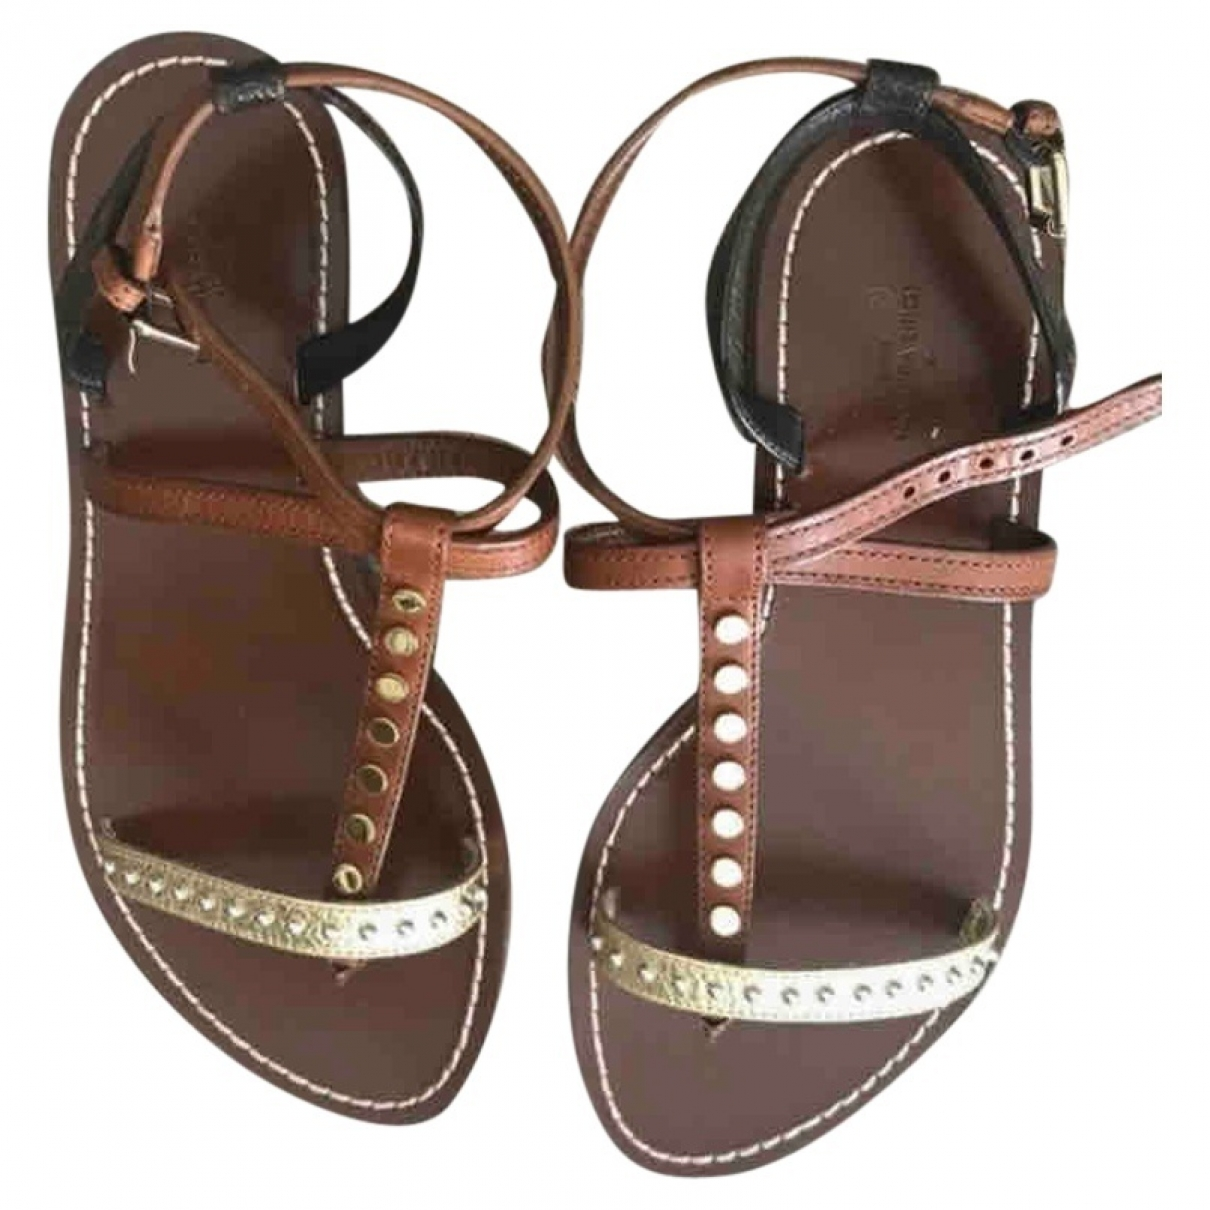 Louis Vuitton \N Brown Leather Sandals for Women 37 EU